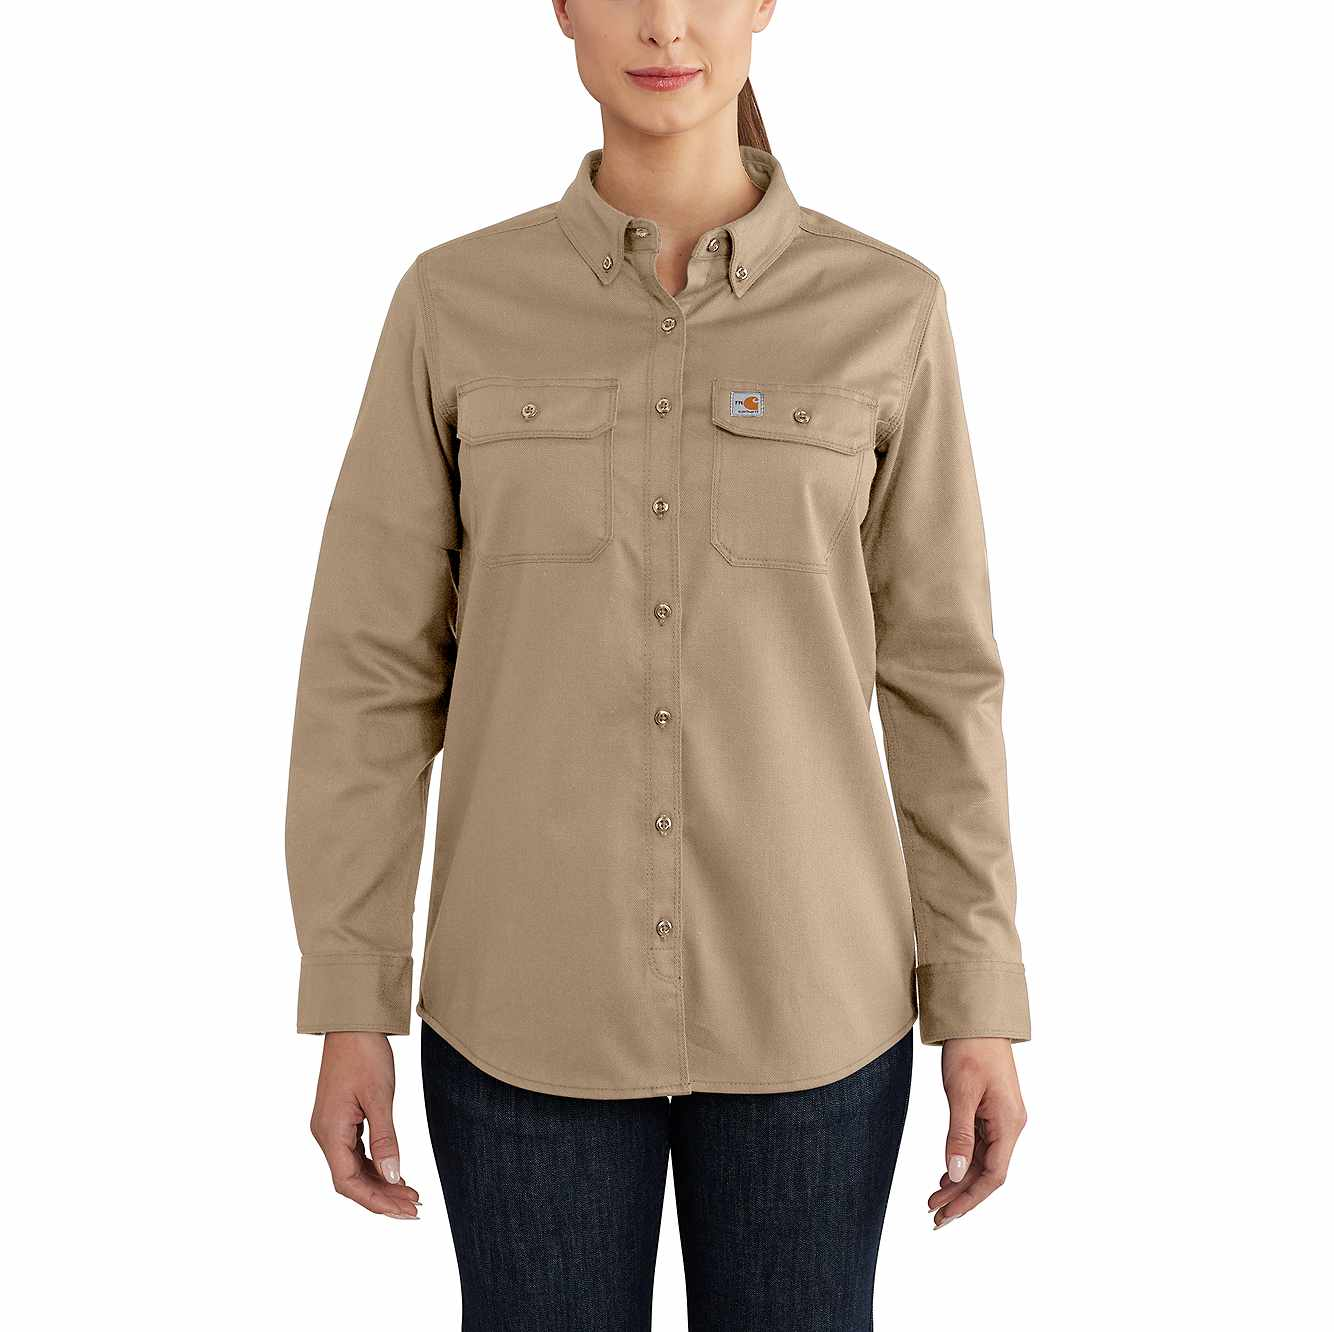 Picture of Women's FR Rugged Flex® Twill Shirt in Khaki